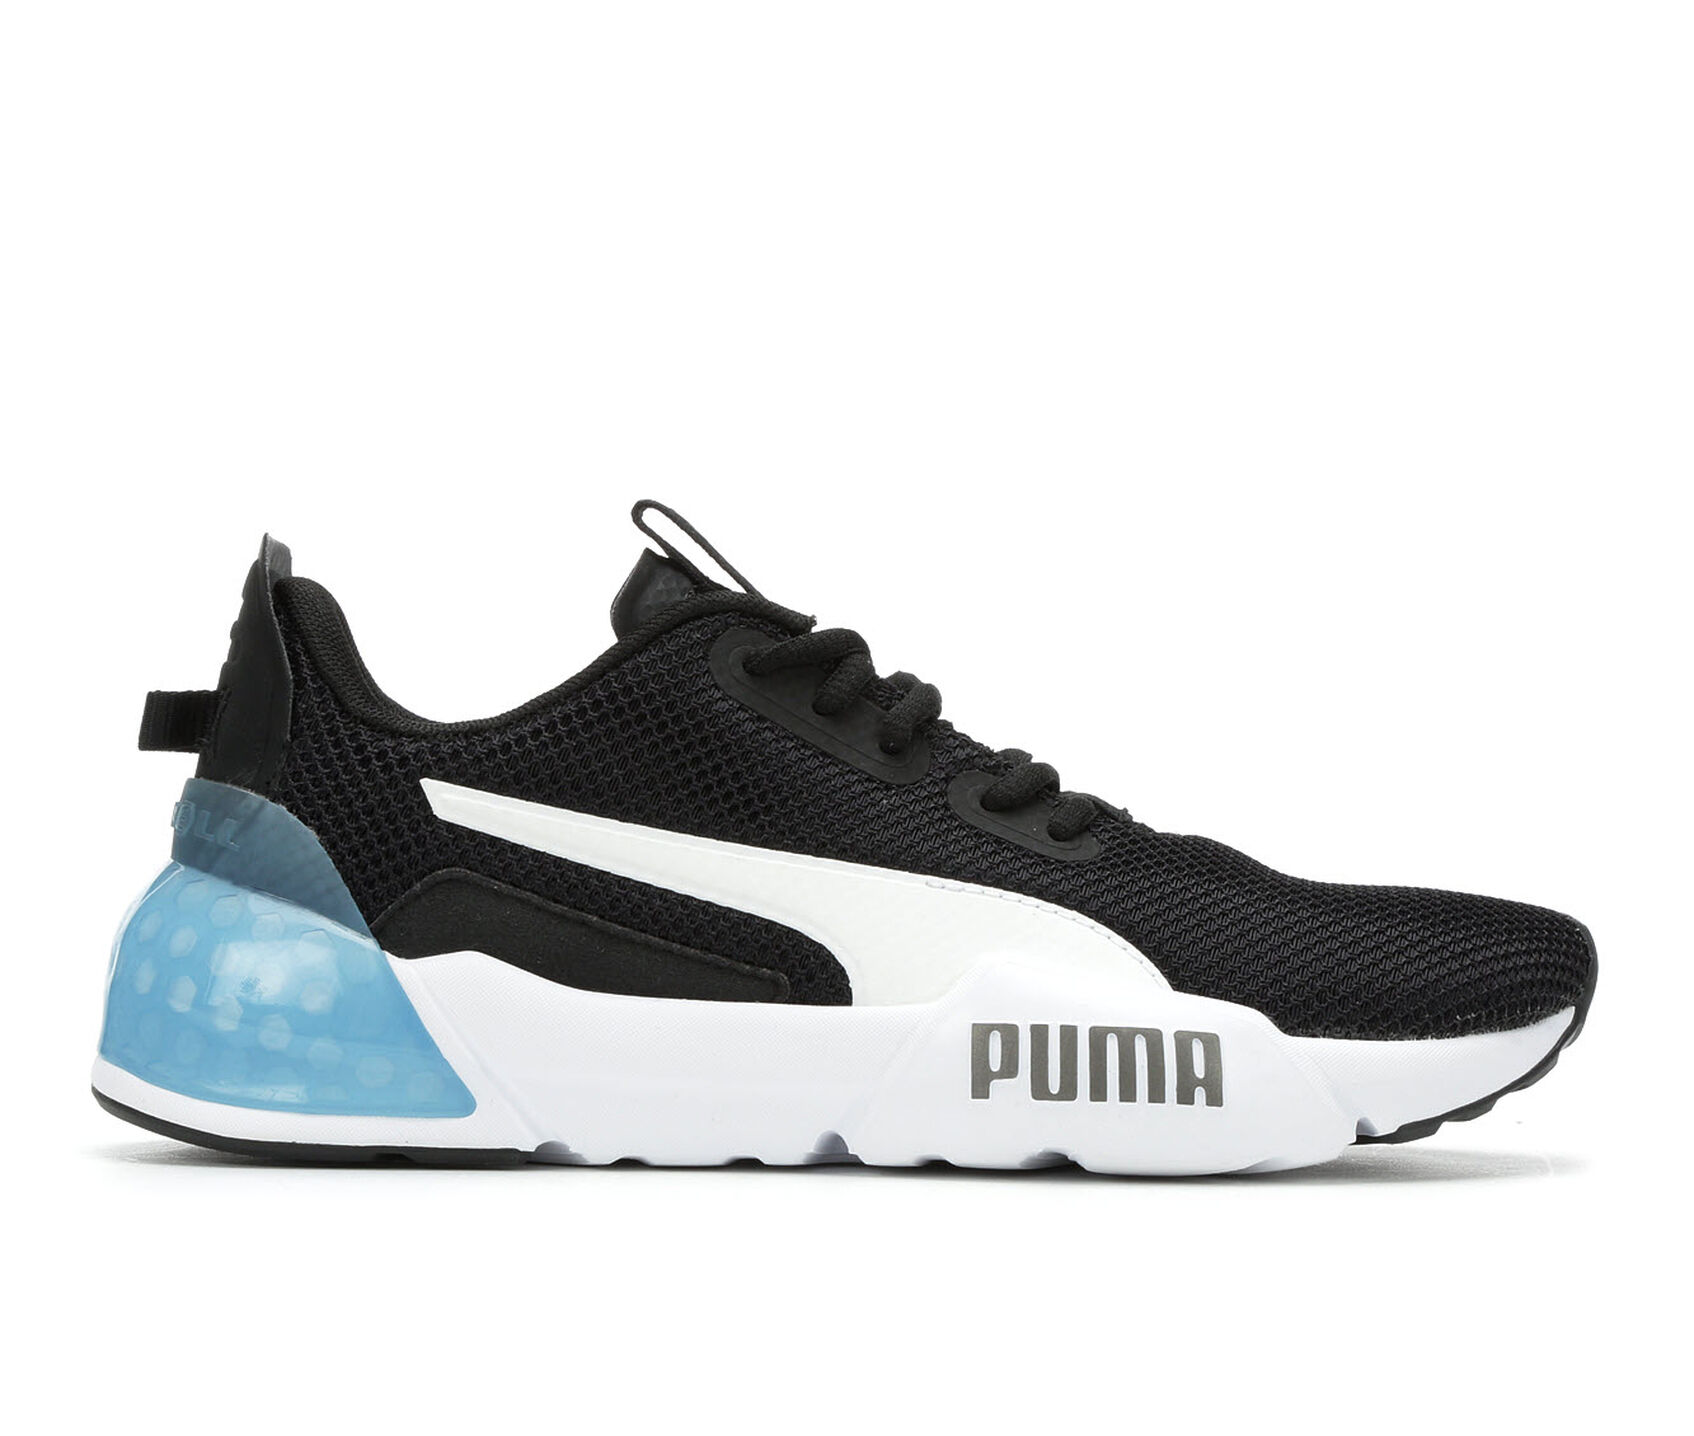 b58834959a Women's Puma Cell Phase Sneakers